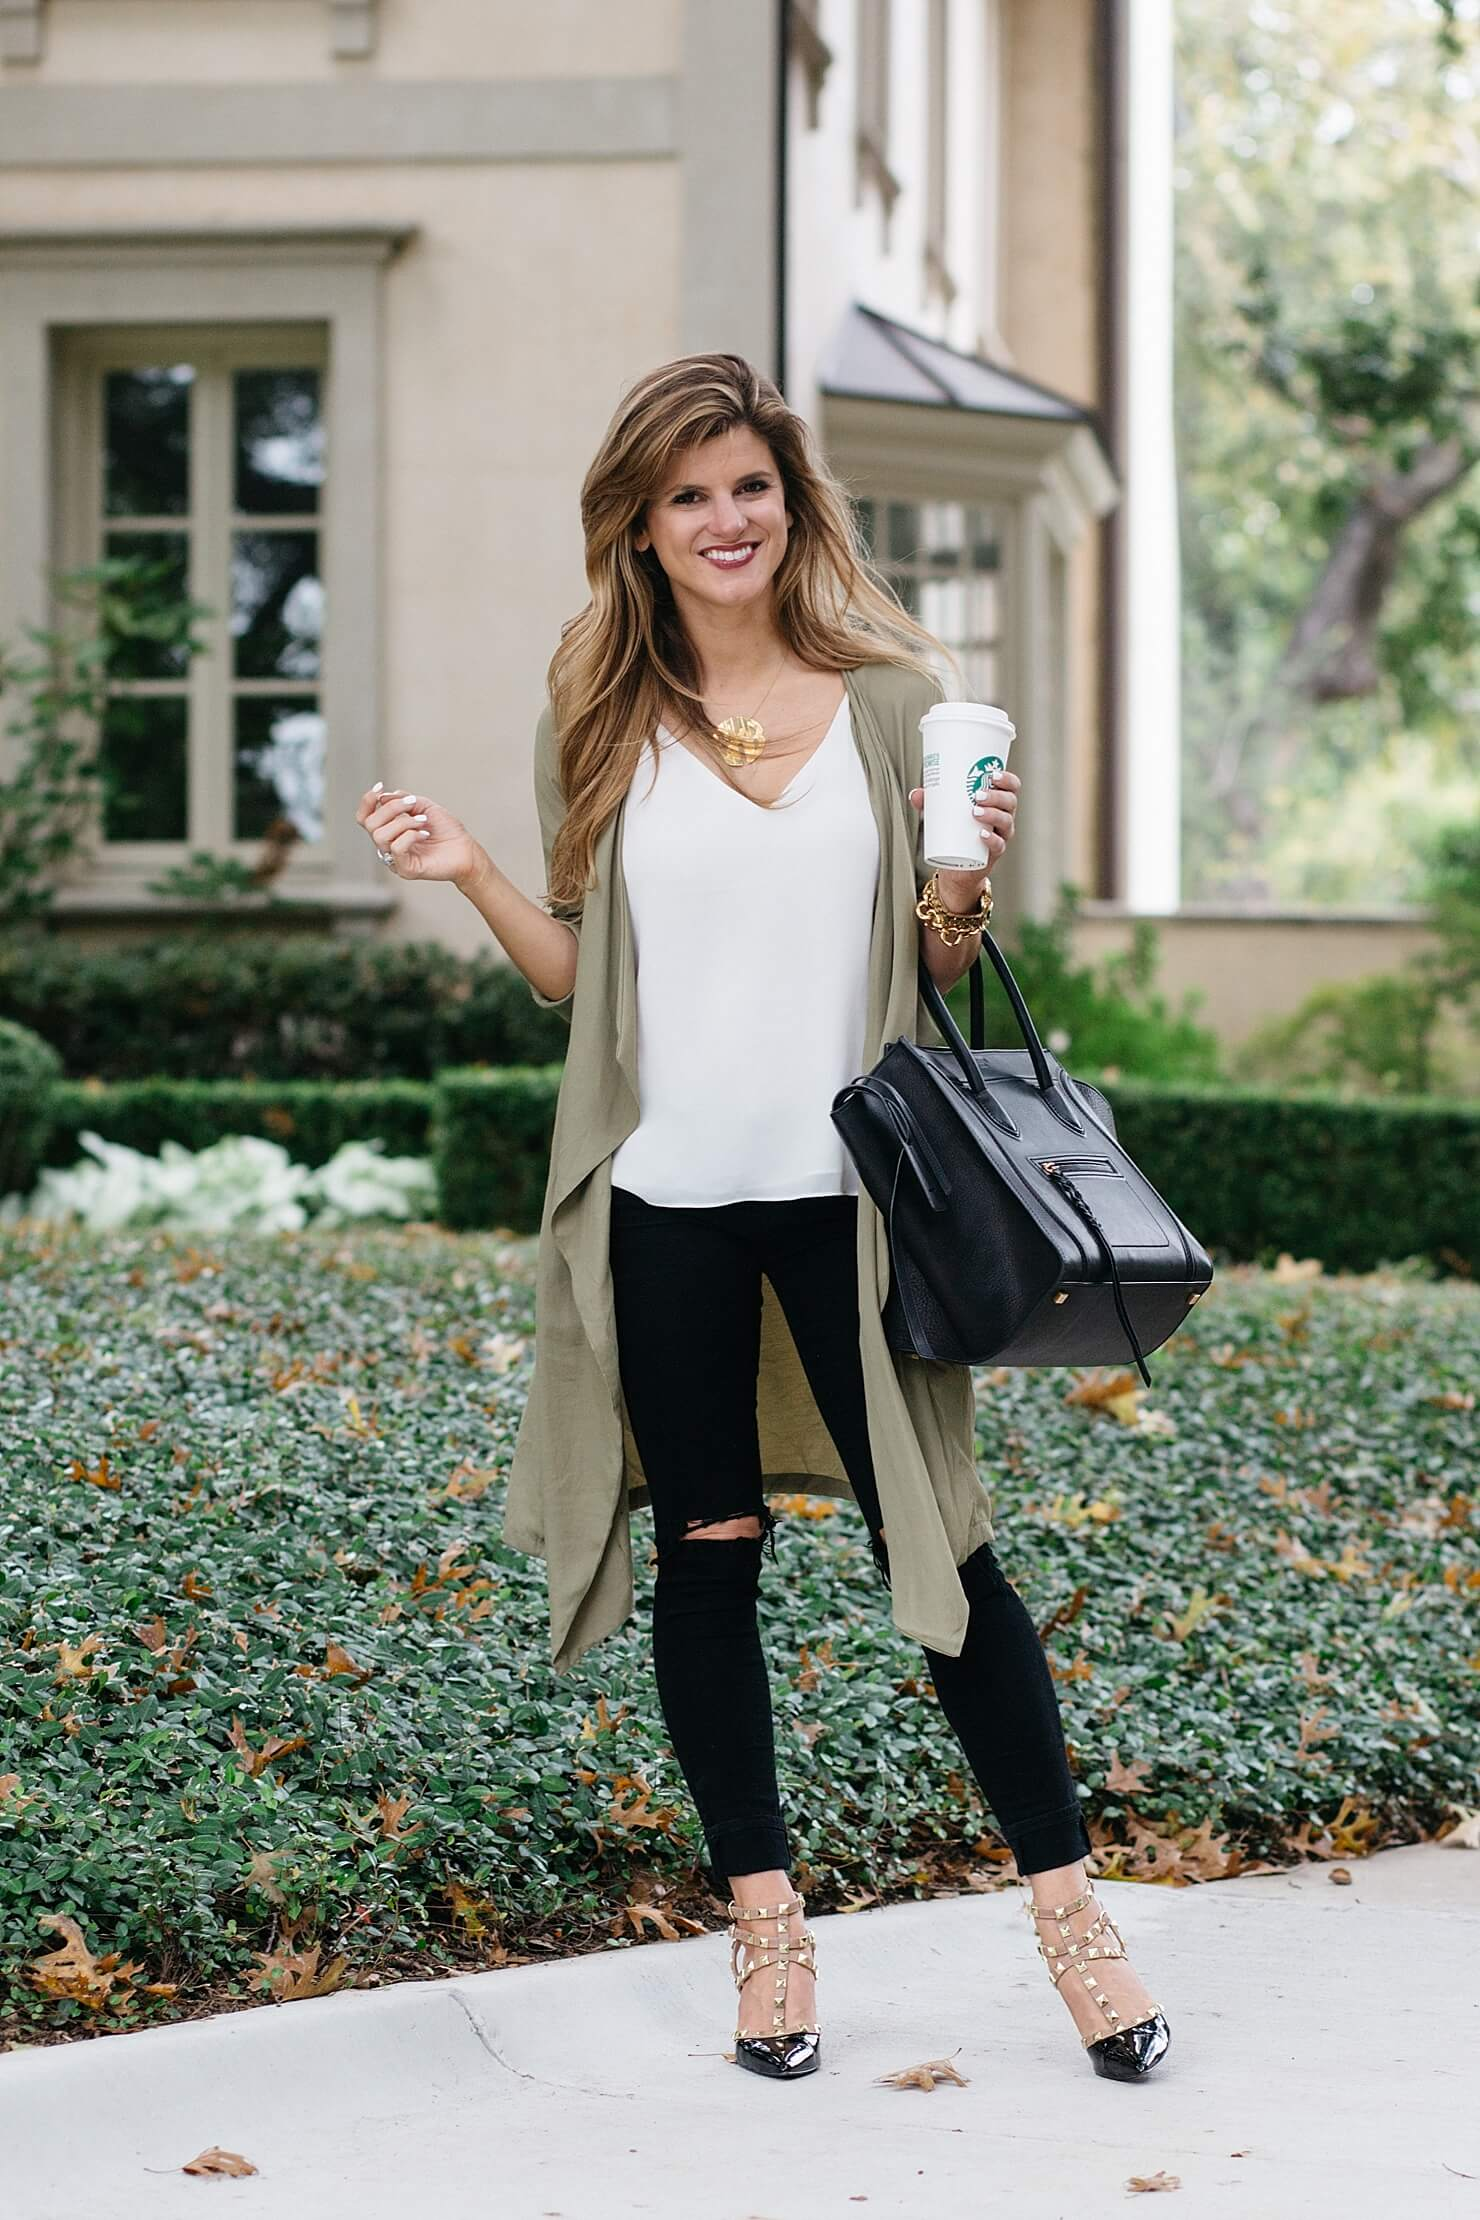 a365a81791f8 What to wear with black jeans - 30+ Black Jeans Outfit Ideas